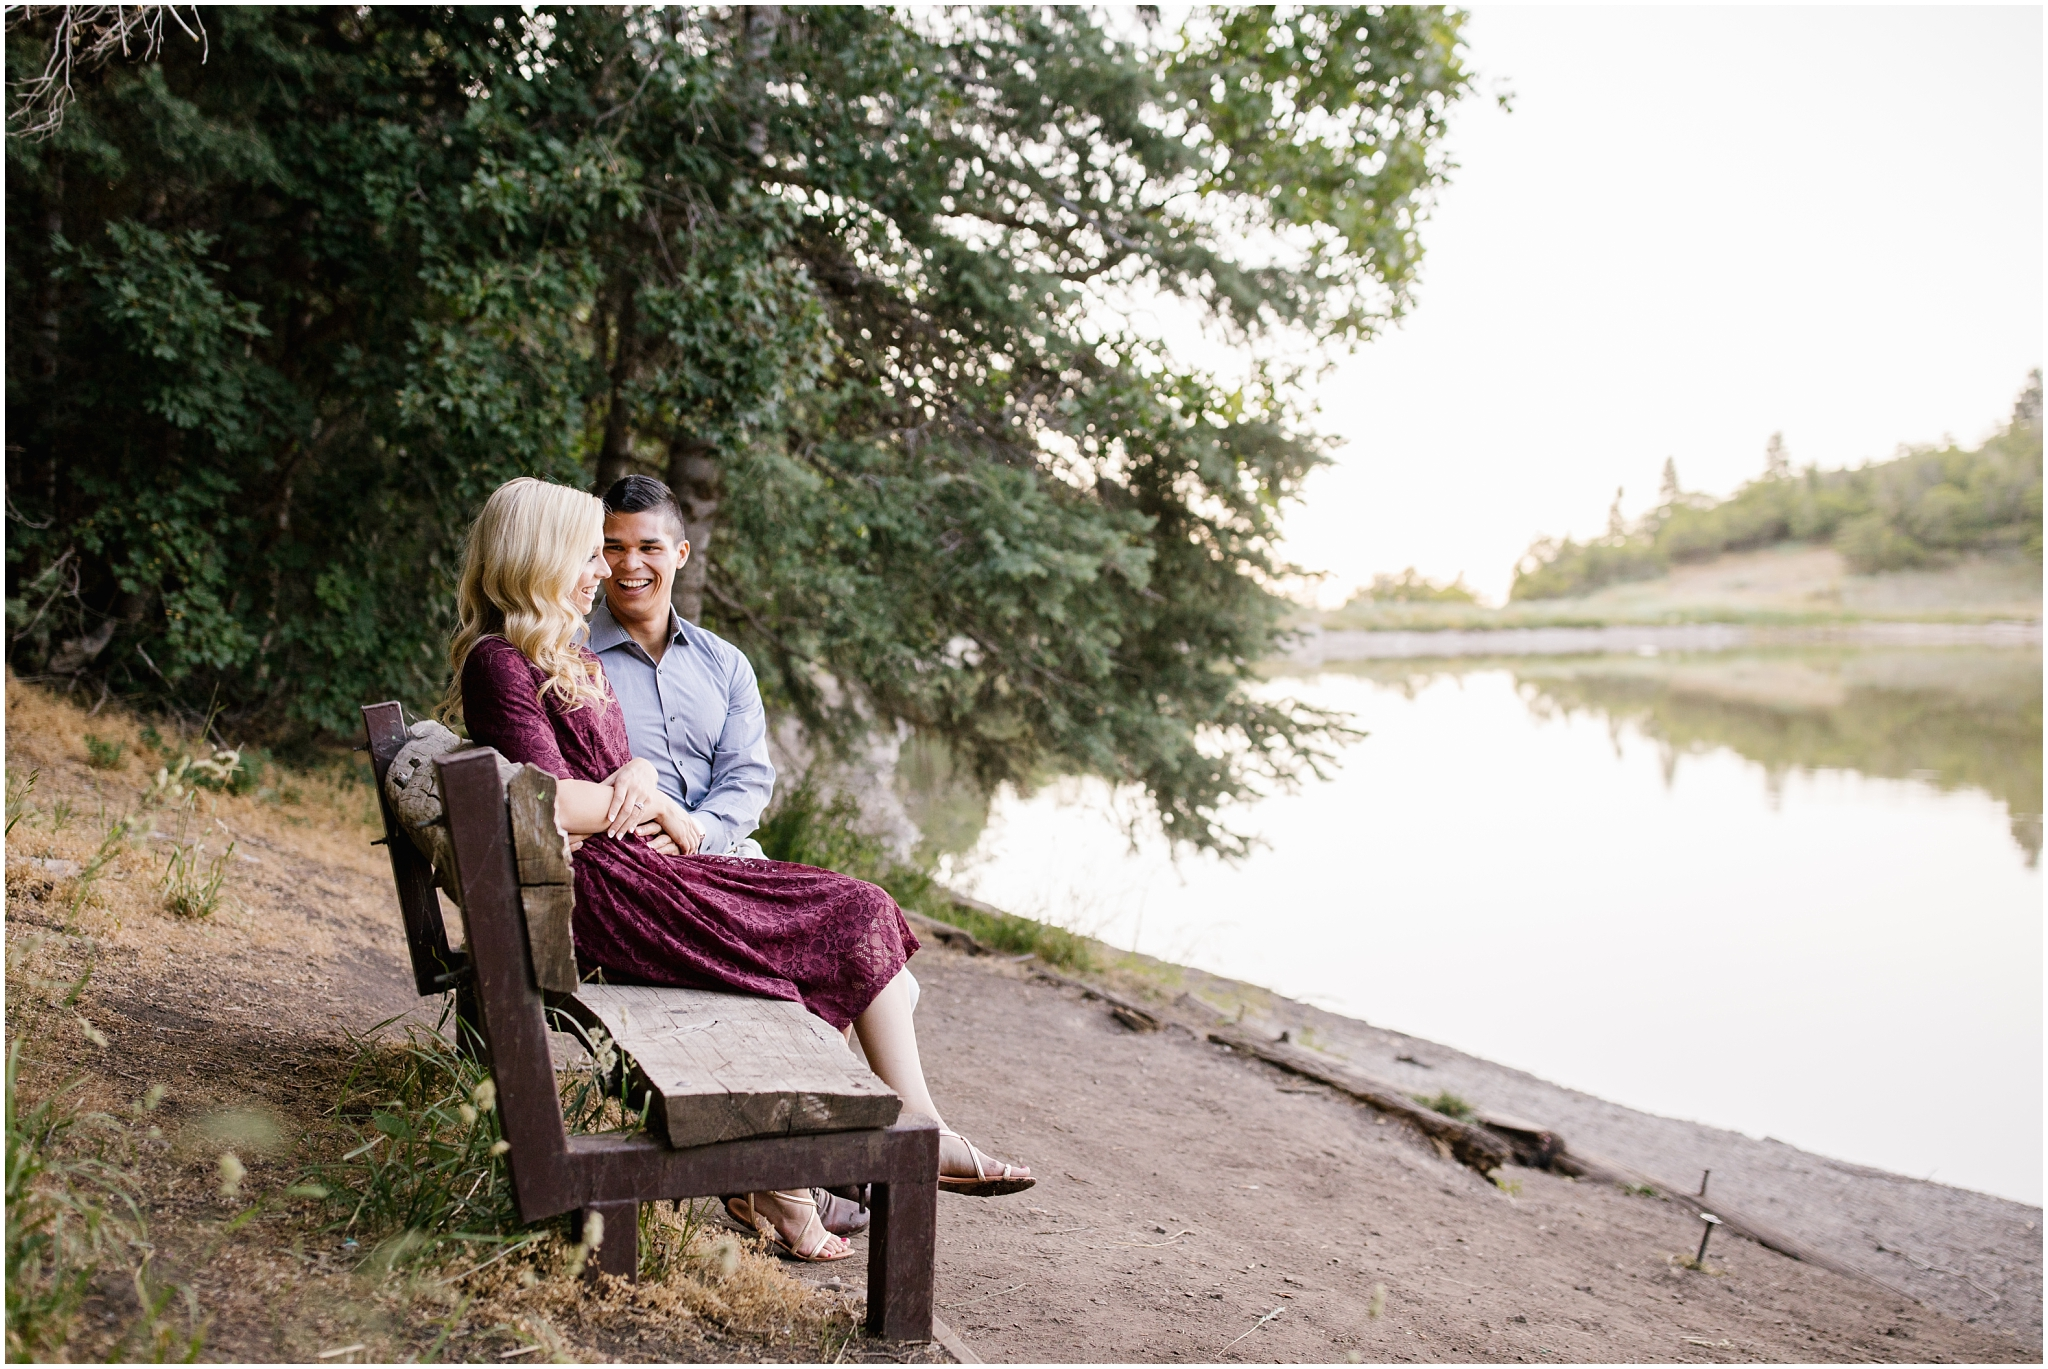 HCengagements-96_Lizzie-B-Imagery-Utah-Wedding-Photographer-Central-Utah-Park-City-Salt-Lake-City-Payson-Canyon-Engagement-Session.jpg